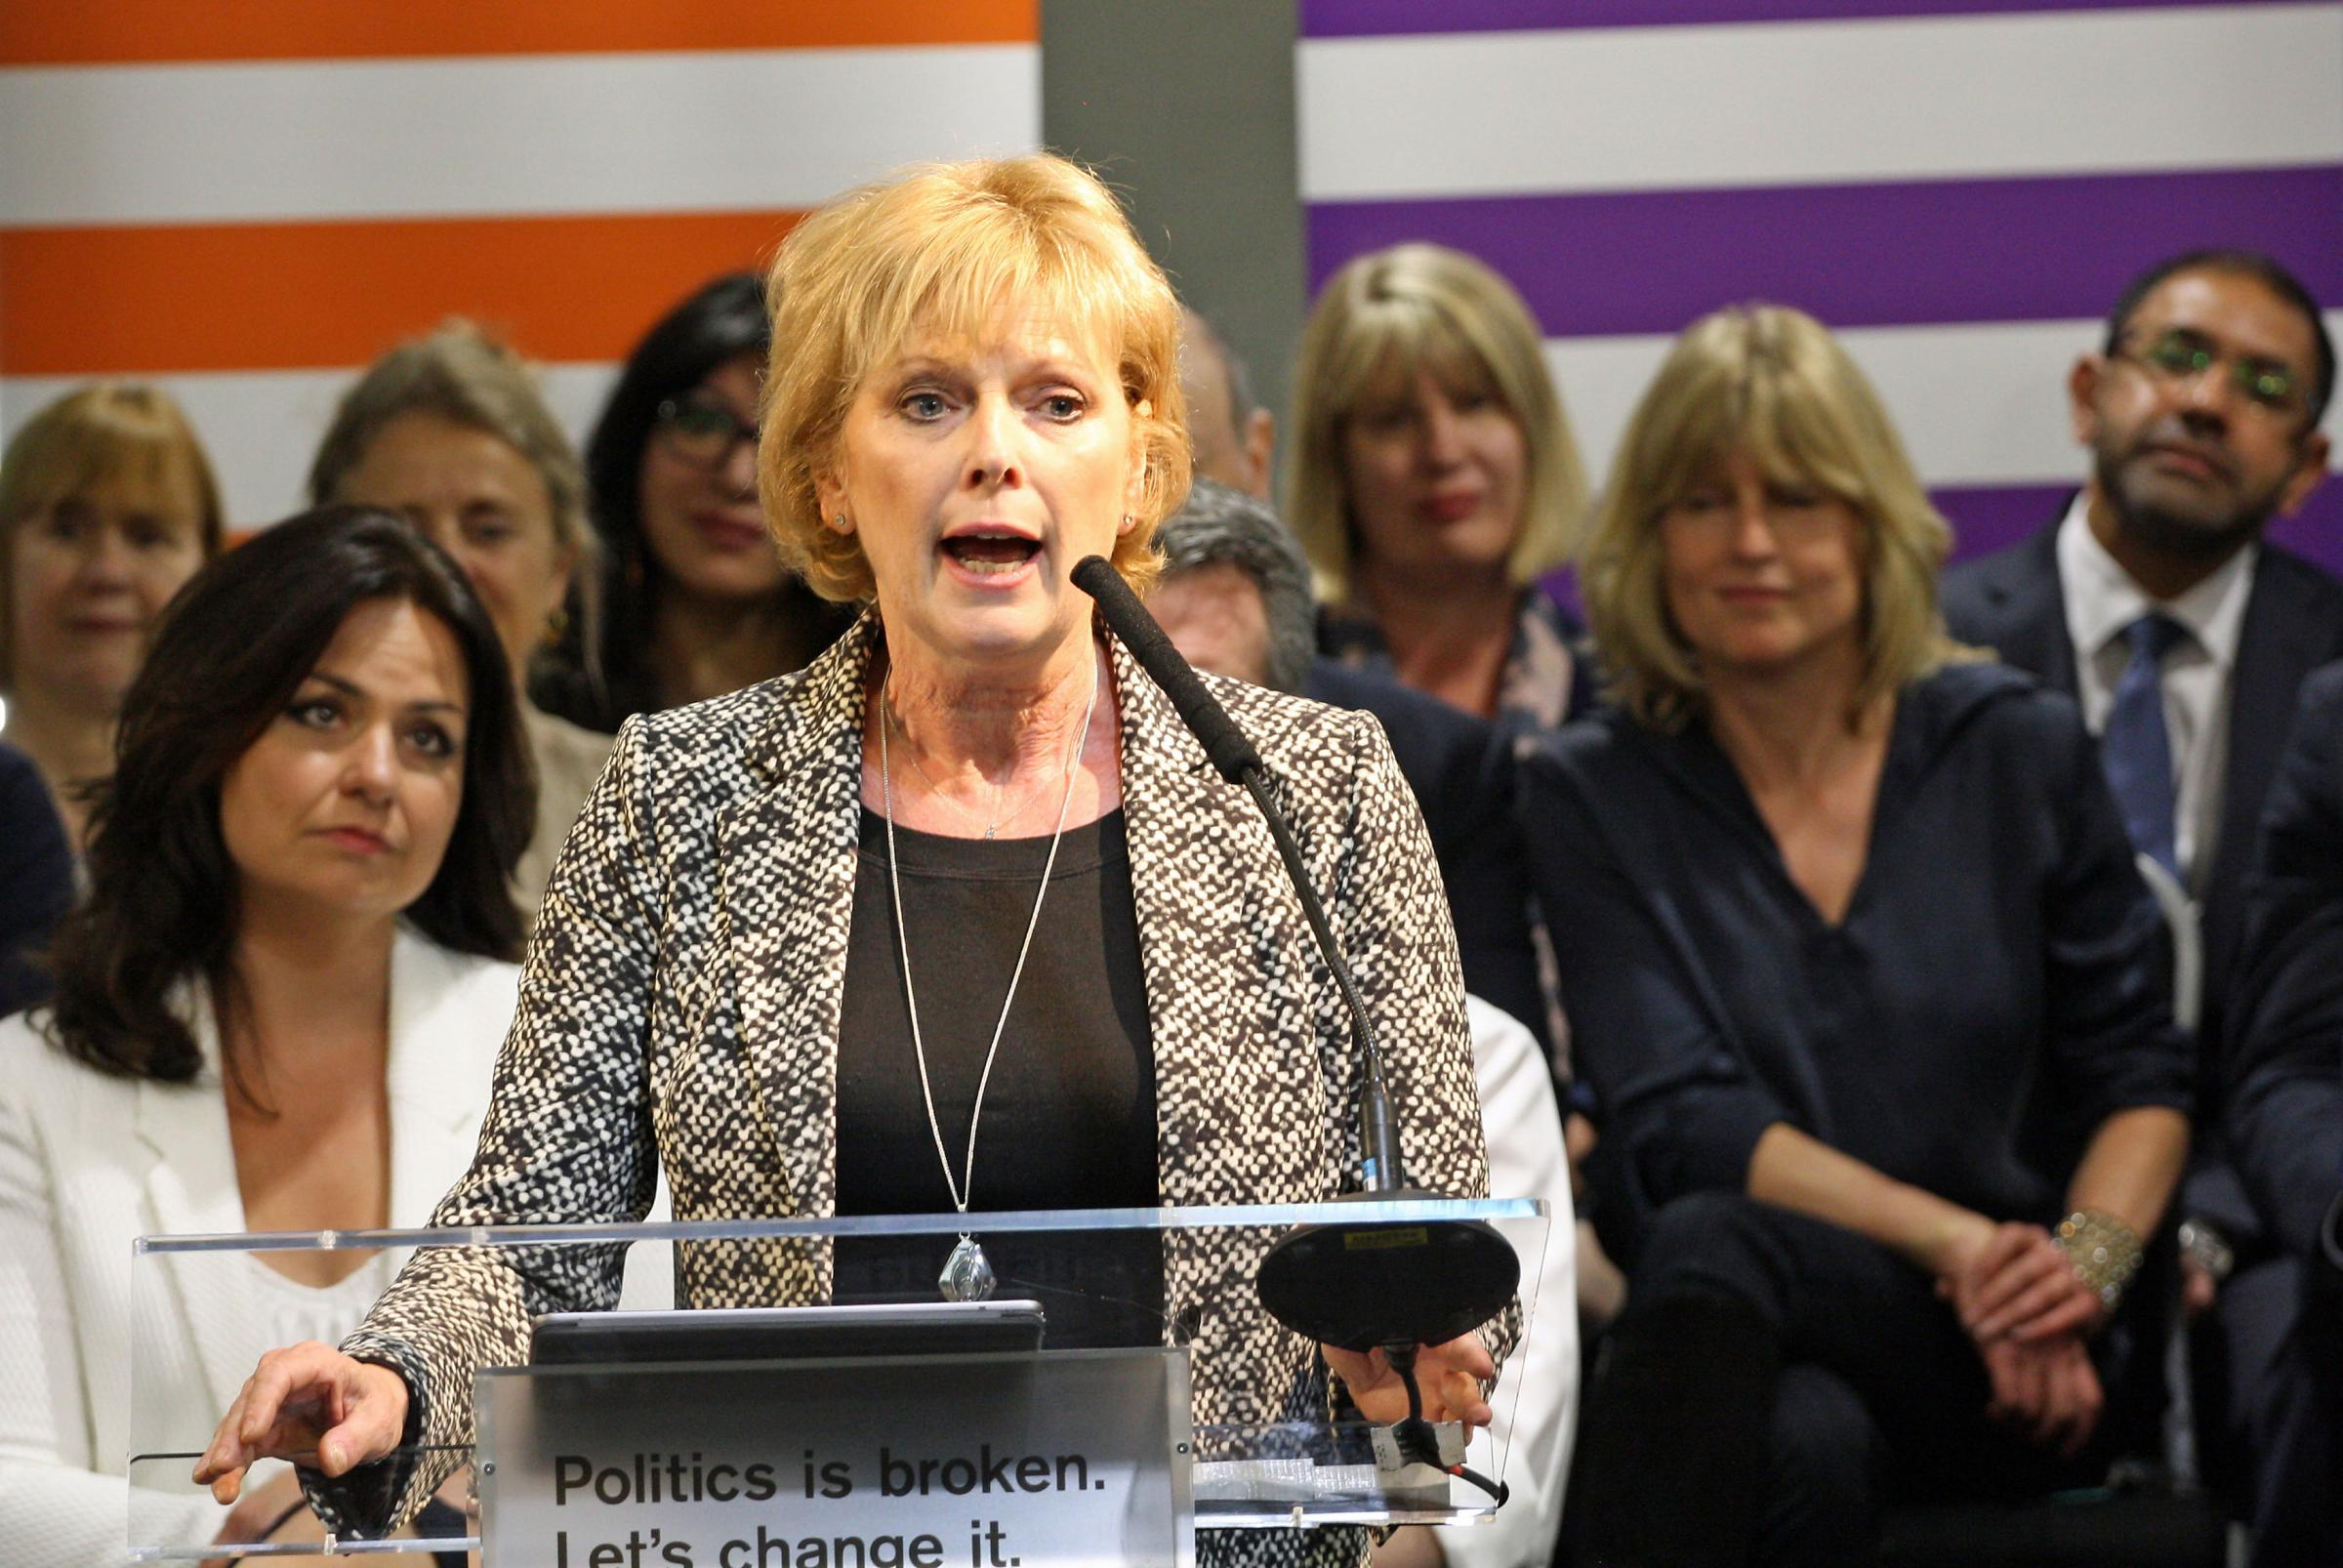 Anna Soubry addressing supporters during the launch of the Change UK European election campaign in Bristol. PRESS ASSOCIATION Photo. Picture date: Tuesday April 23, 2019. See PA story POLITICS Brexit ChangeUK. Photo credit should read: Rod Minchin/PA Wir